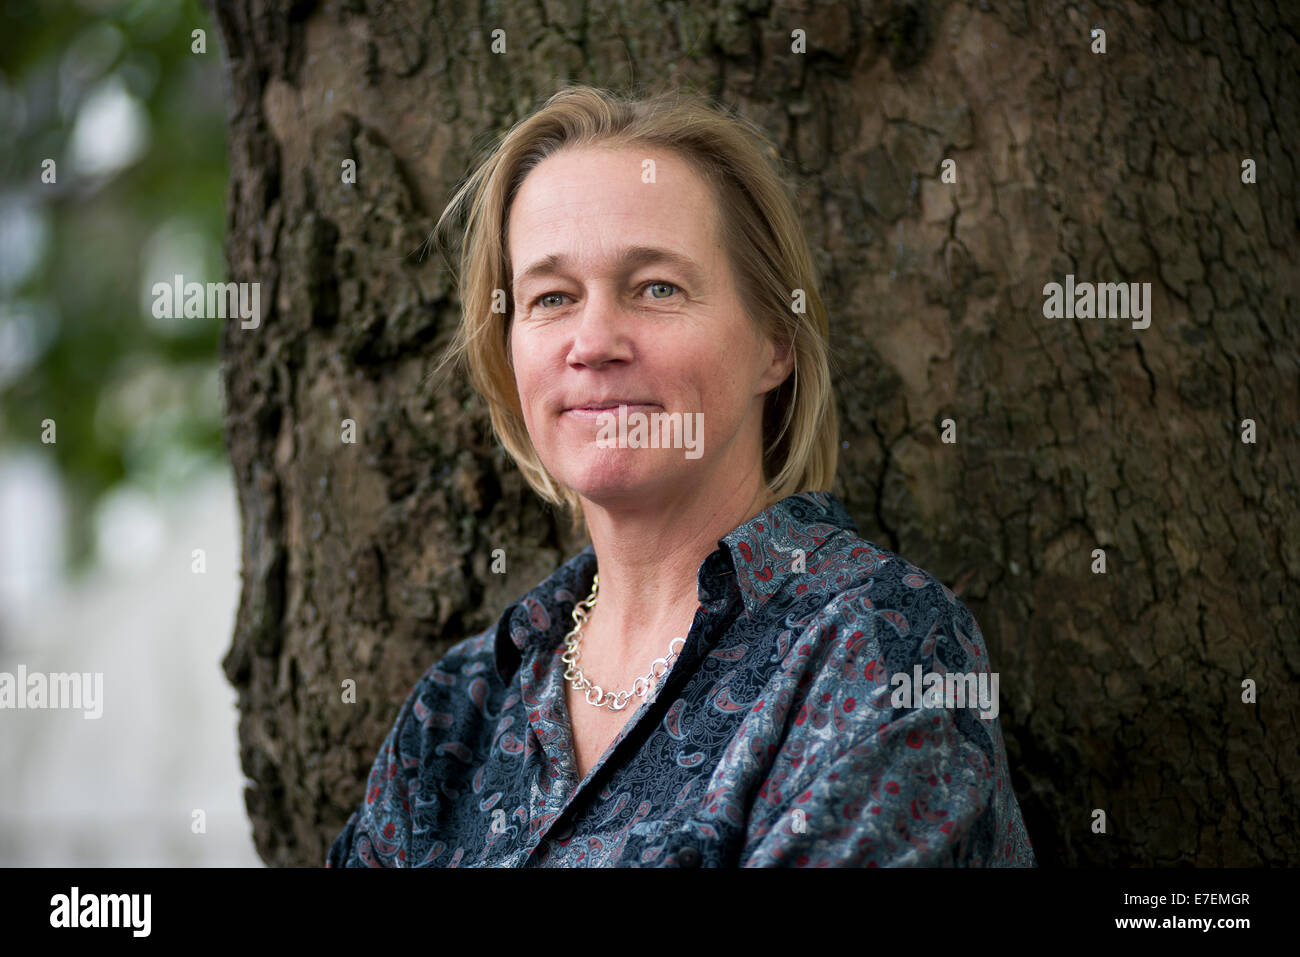 Author Alice Greenway appears at the Edinburgh International Book Festival. - Stock Image